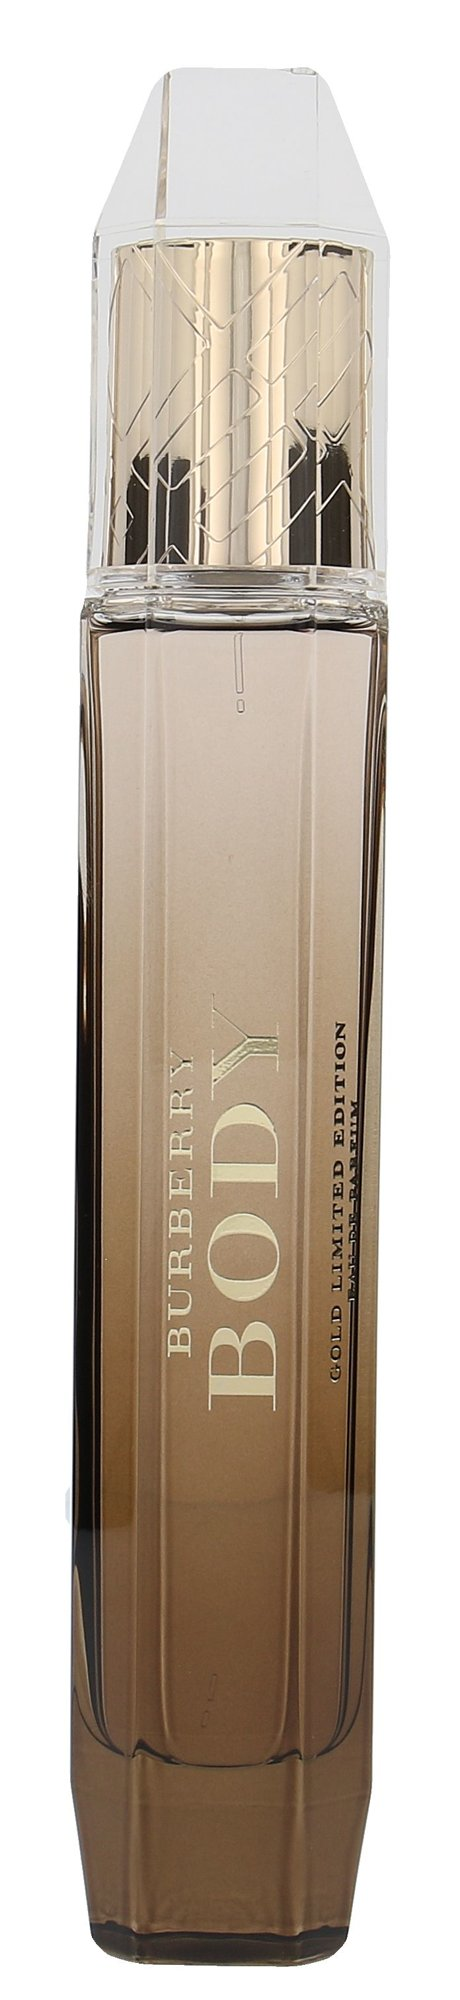 Burberry Body EDP 85ml